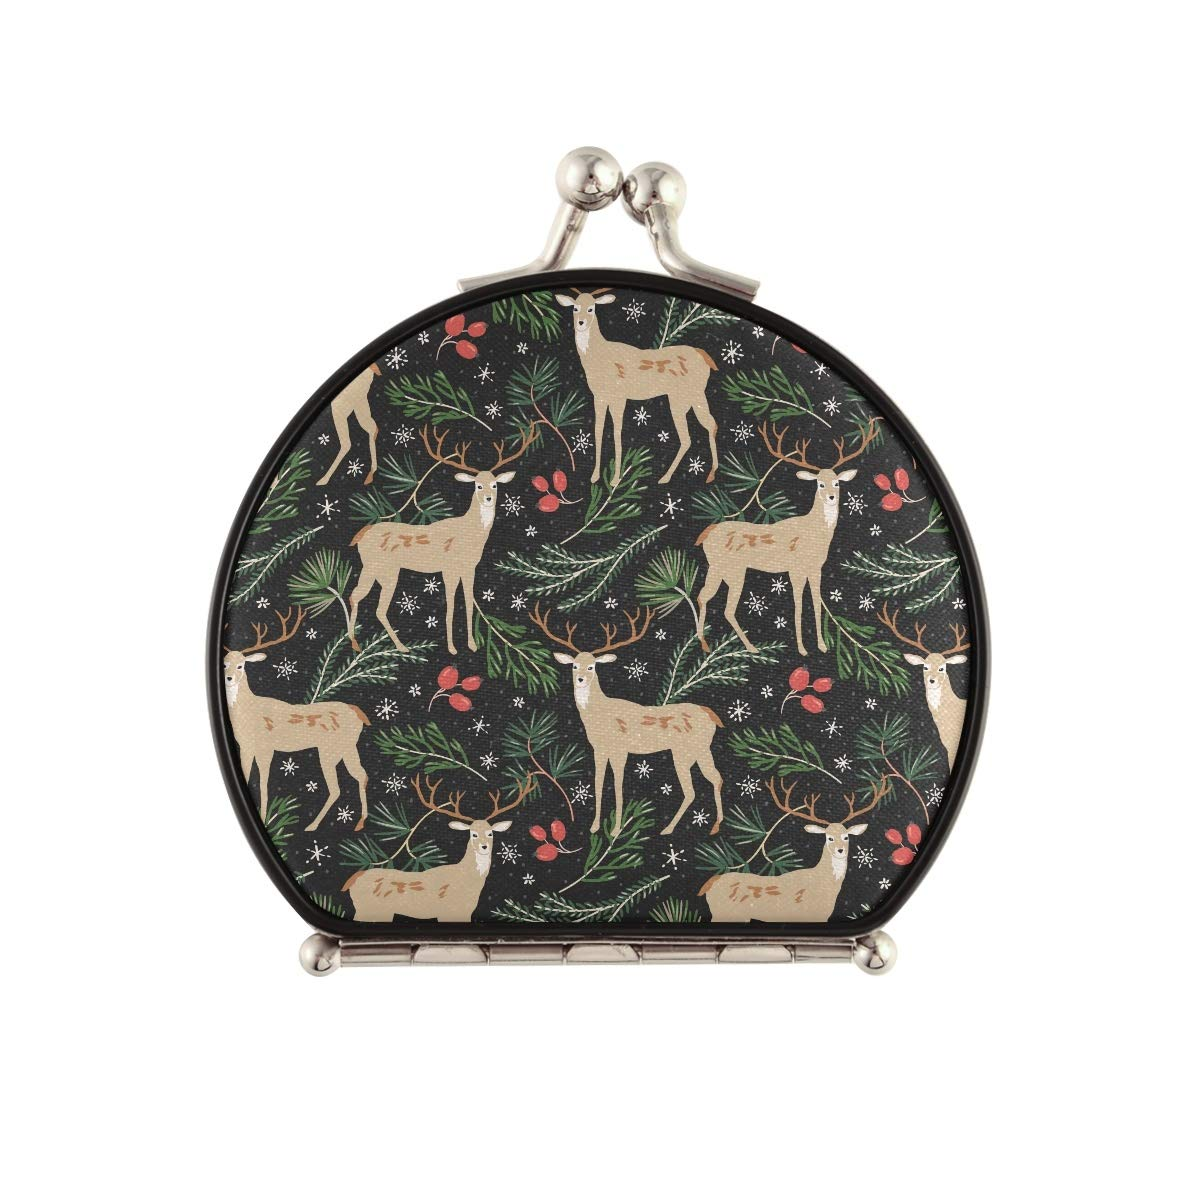 Travel Makeup OFFicial Mirror for Women - Christmas Animal Deer store M Compact